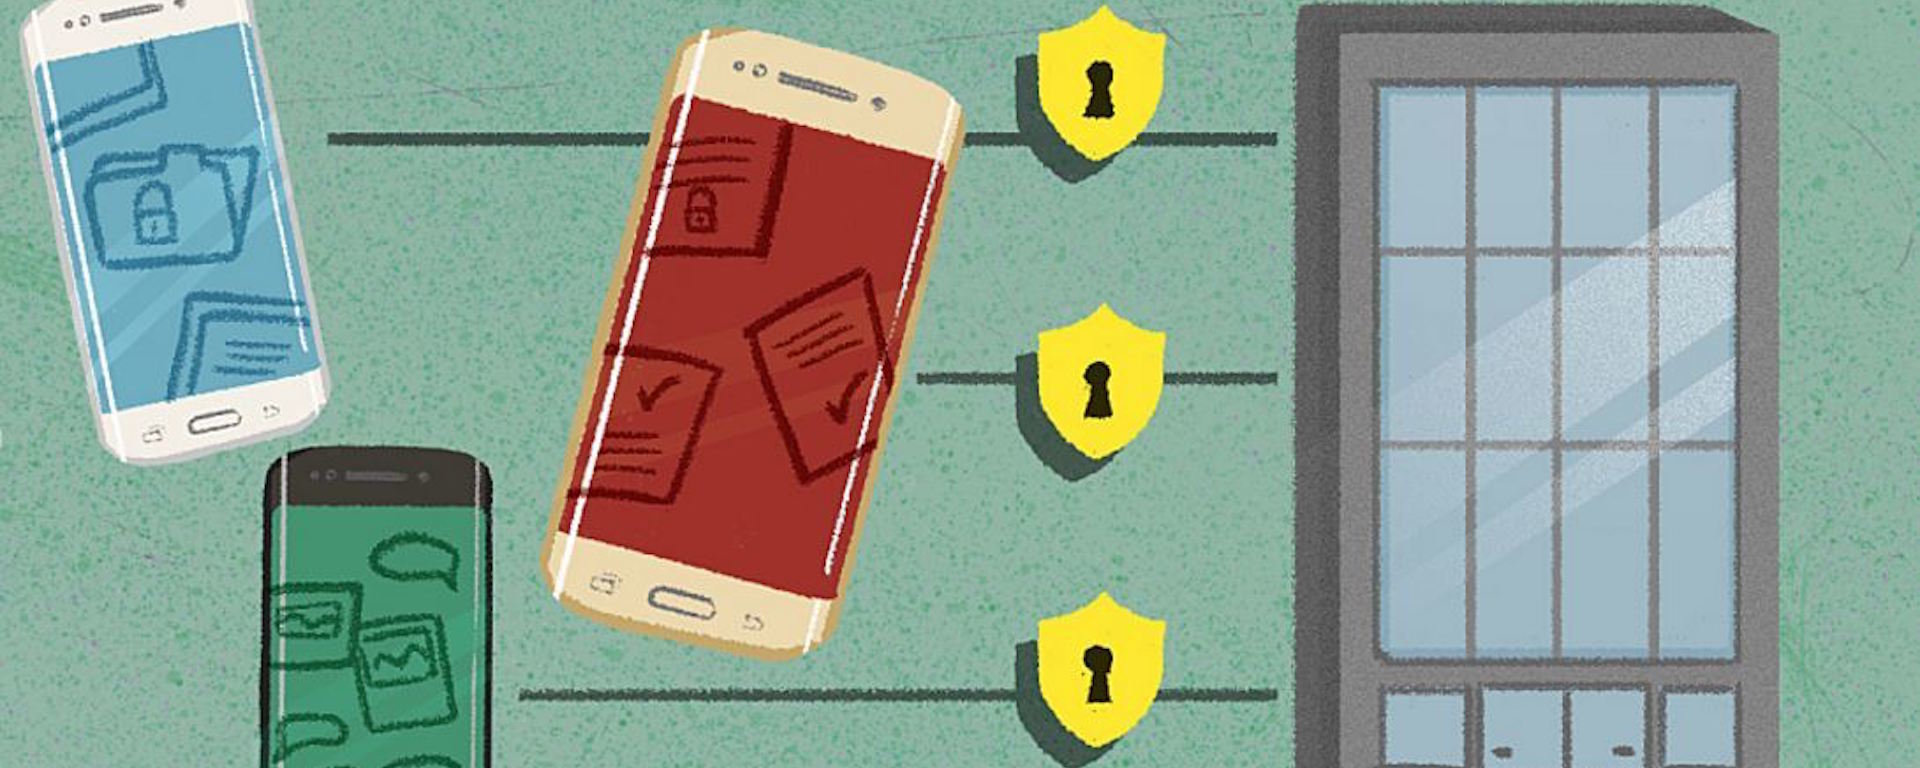 The top mobile security trends of 2015 saw everything from containerization to biometrics.